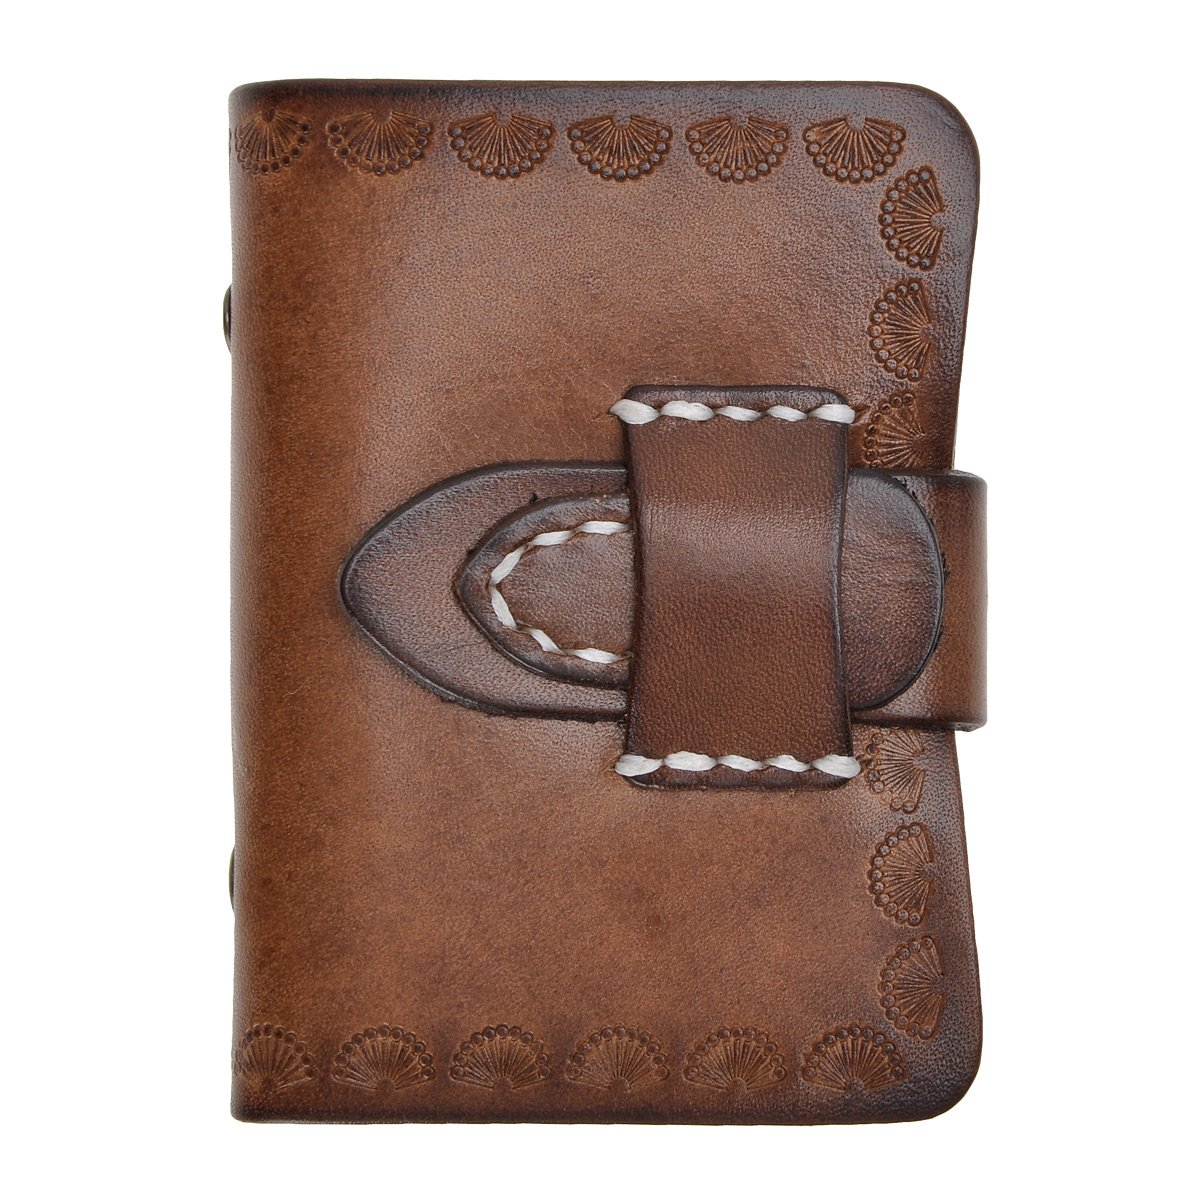 ZLYC Vintage Handmade Leather Belt Closure Card Case Holder, Brown LY-WA-07-BR_CA